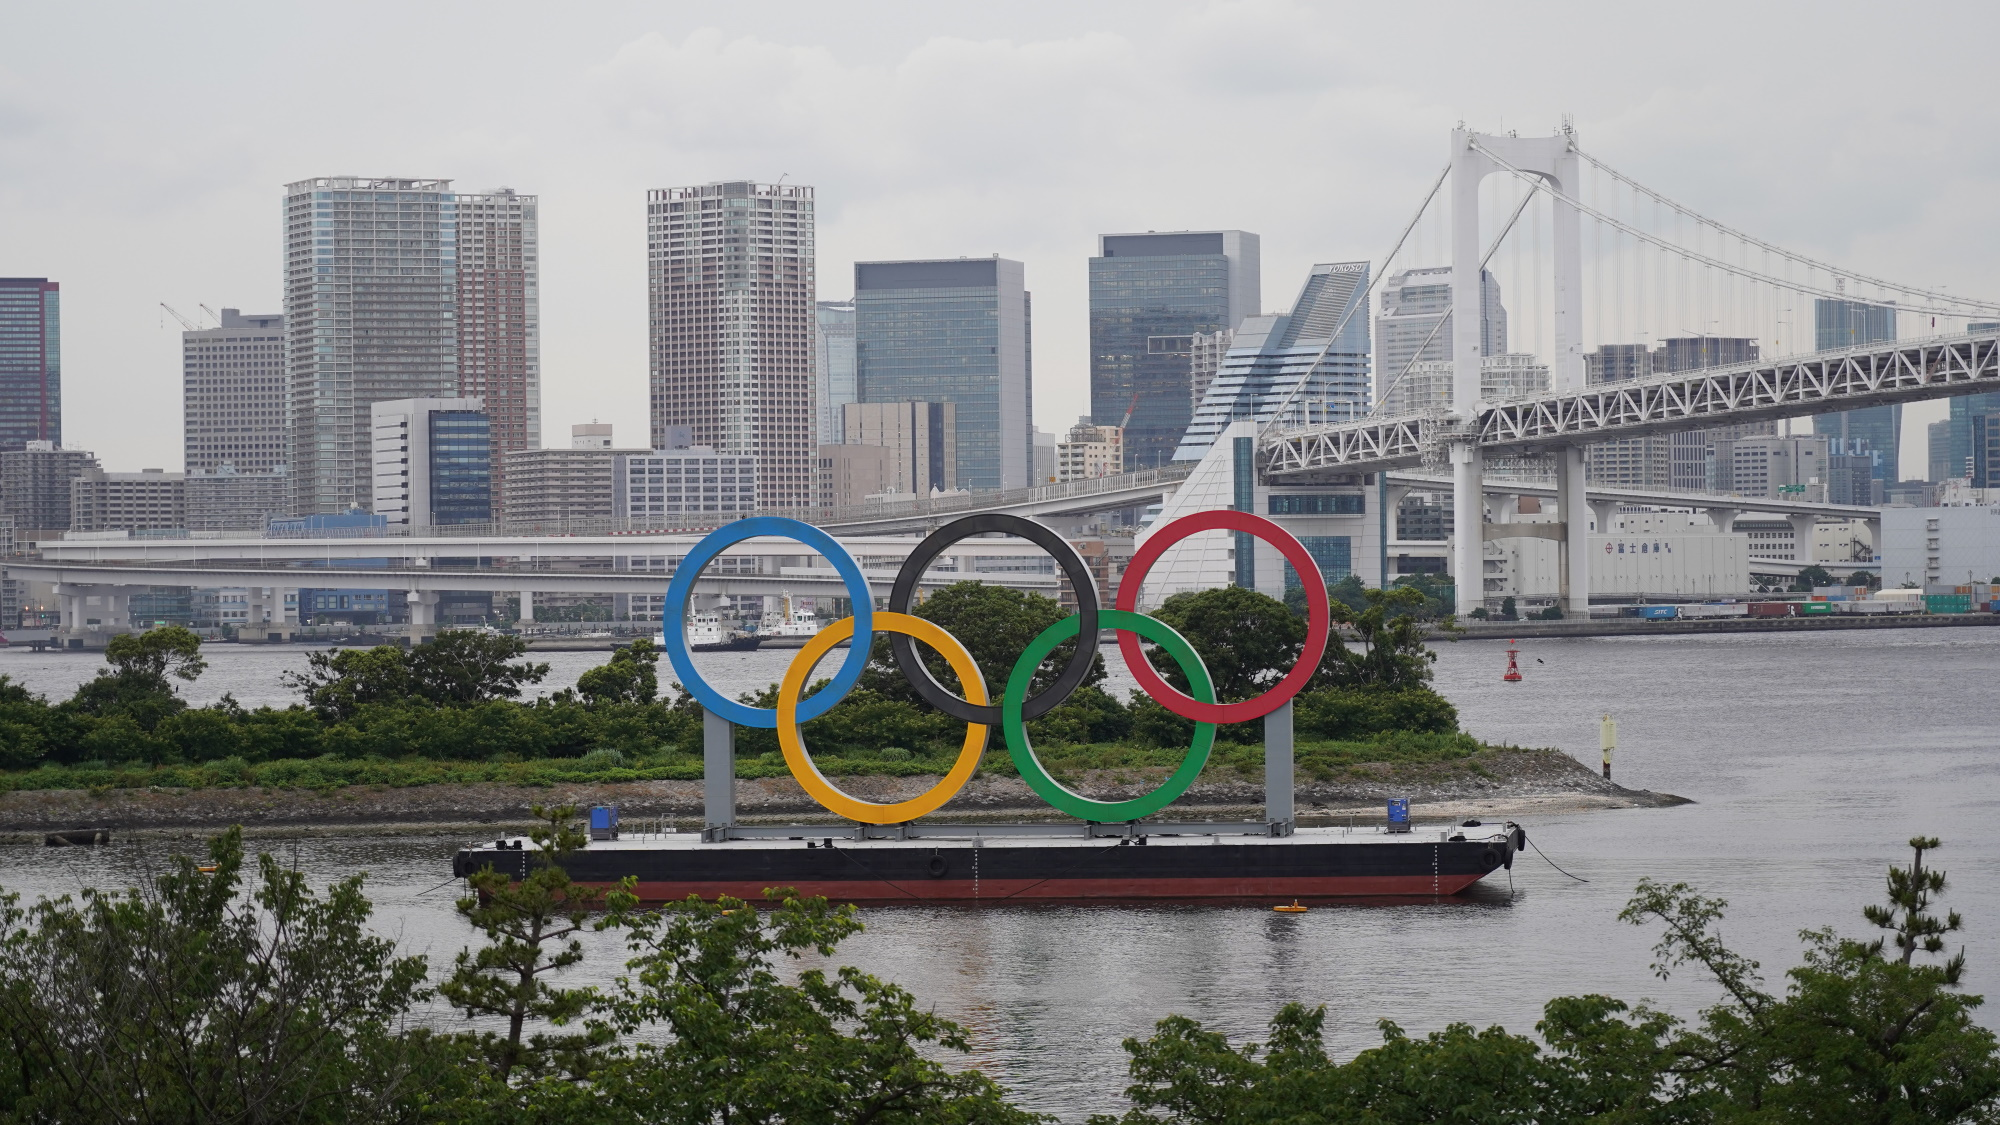 The Olympic Rings are seen displayed by the Odaiba Marine Park